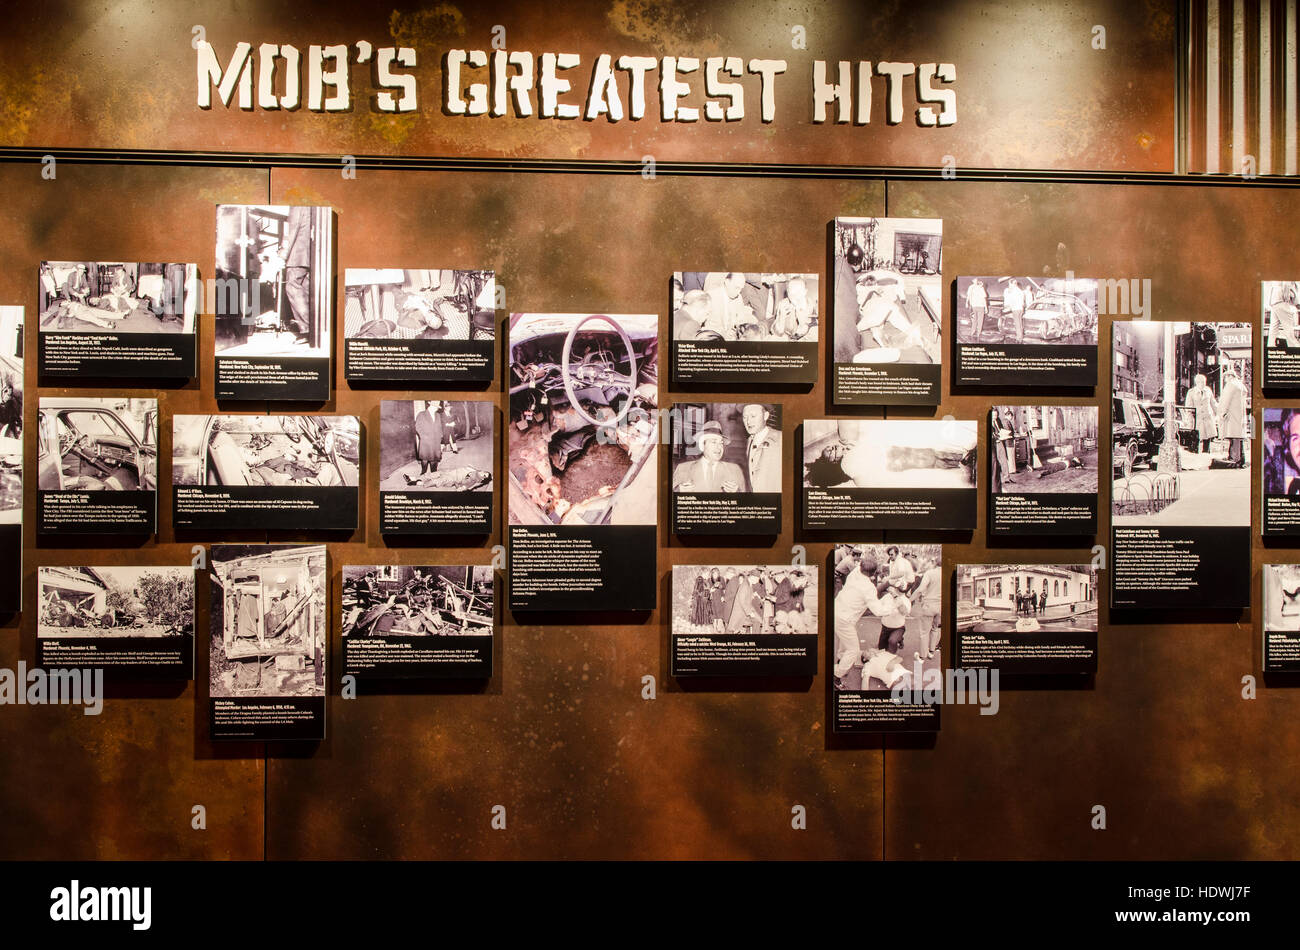 Exhibits and displays in The Mob Museum Las Vegas, Nevada Stock Photo -  Alamy